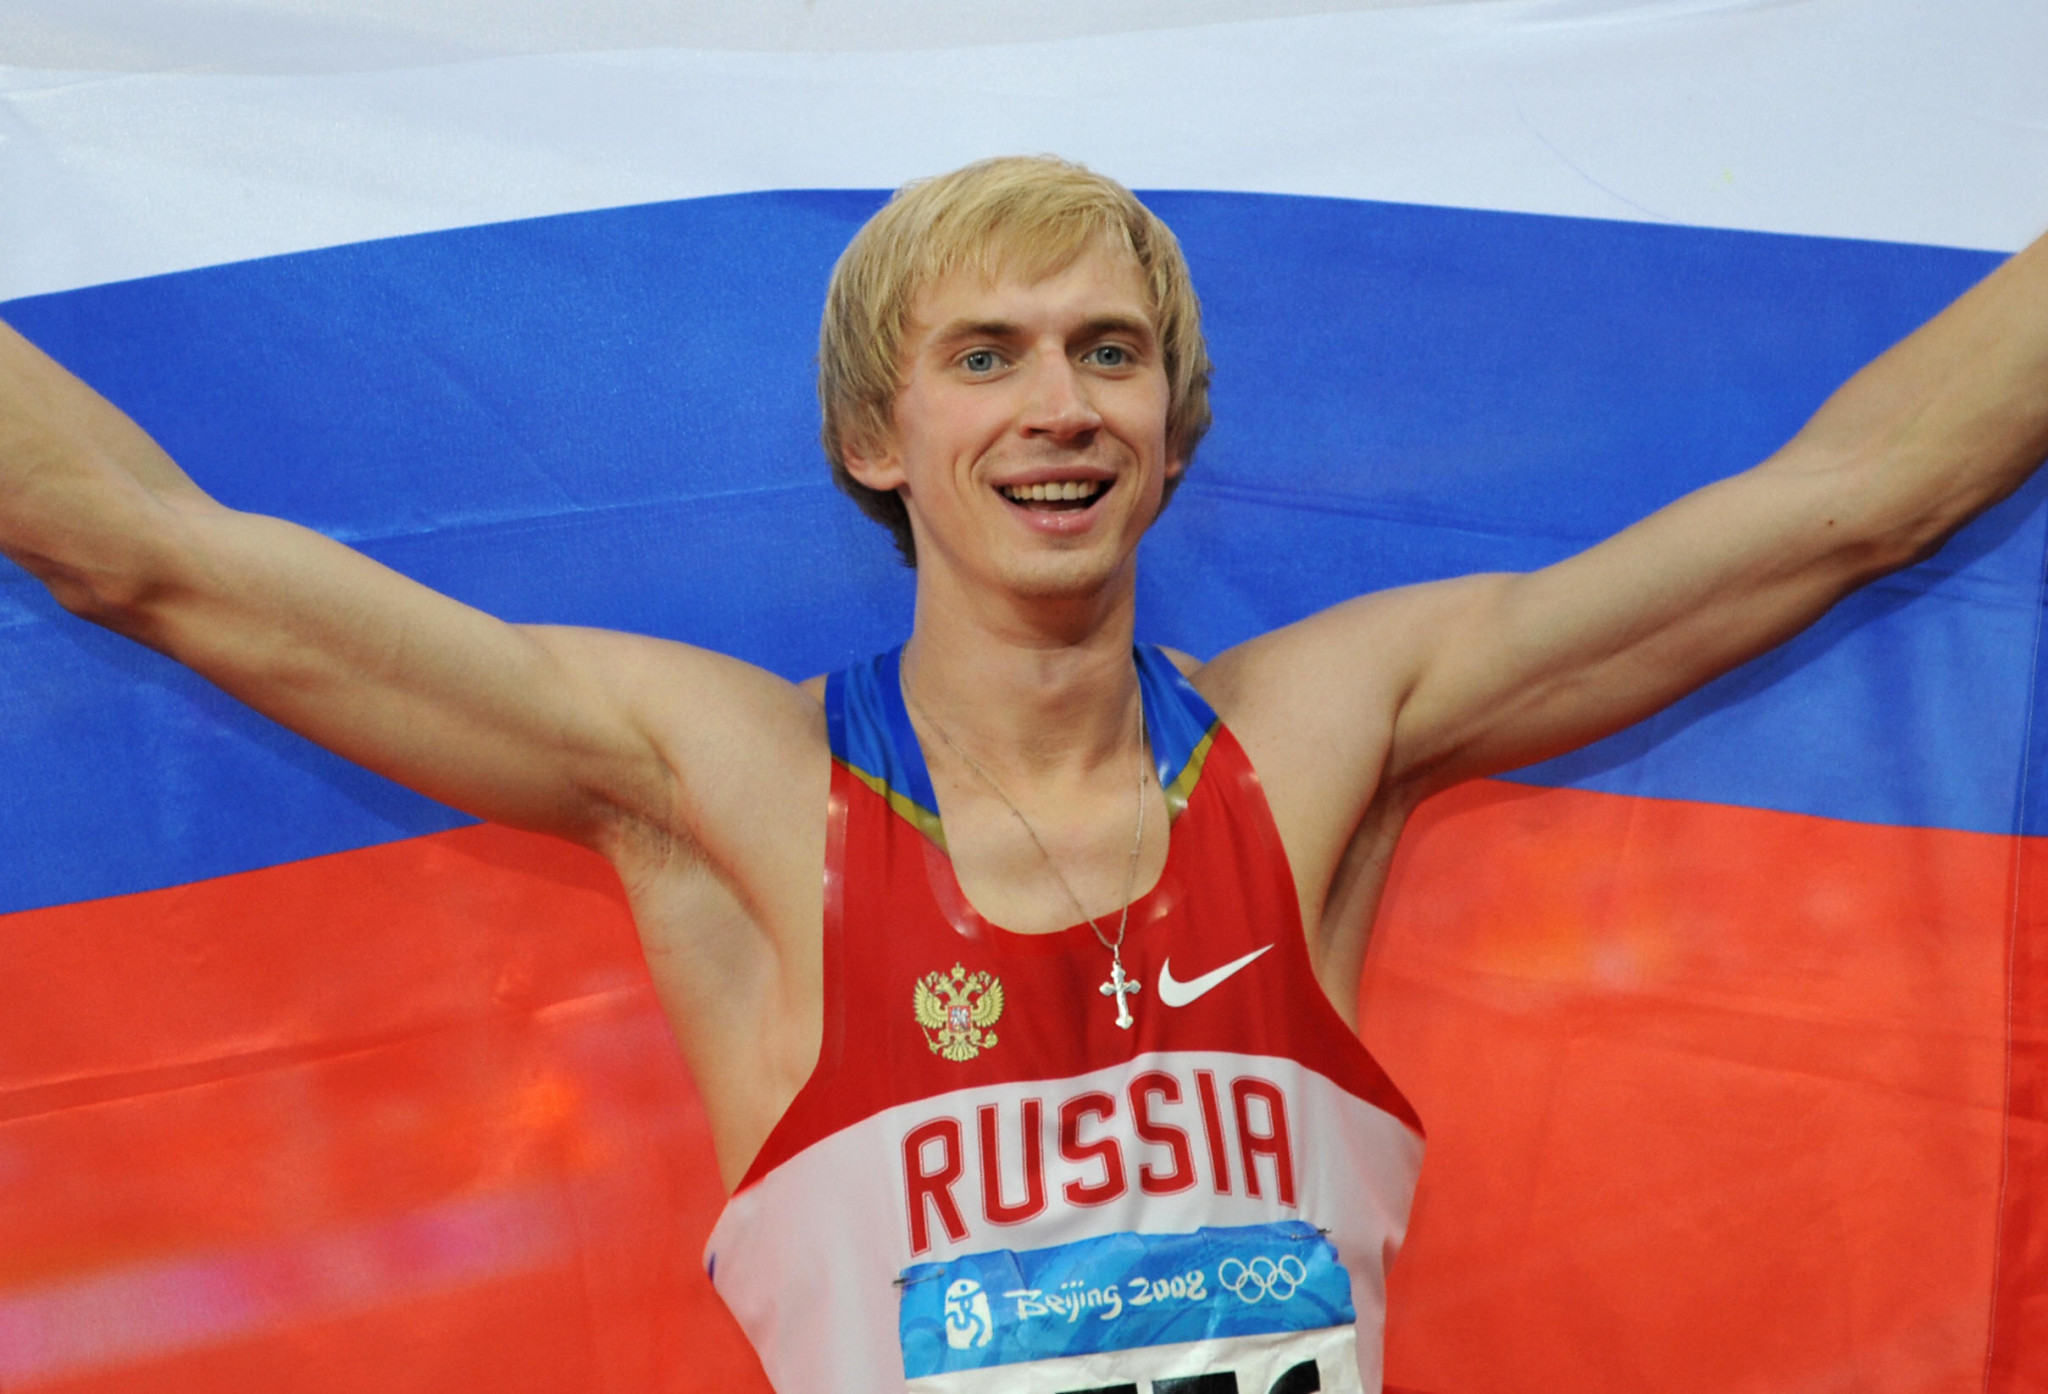 Olympic champions Silnov and Antyukh among four Russian athletes charged with doping offences